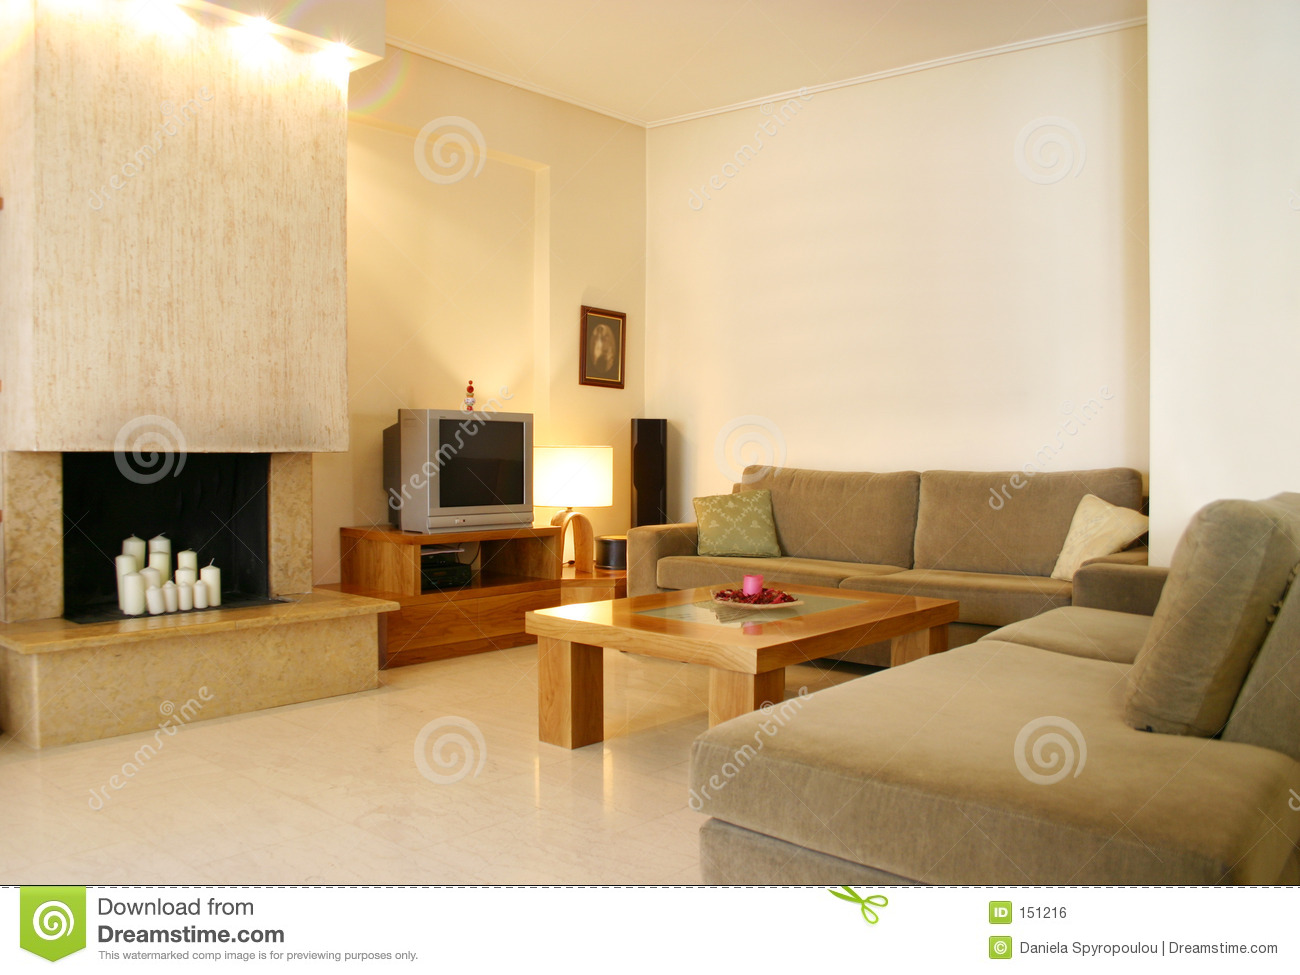 Home Interior Design Royalty Free Stock Image Image Pic Of Interior Design Home